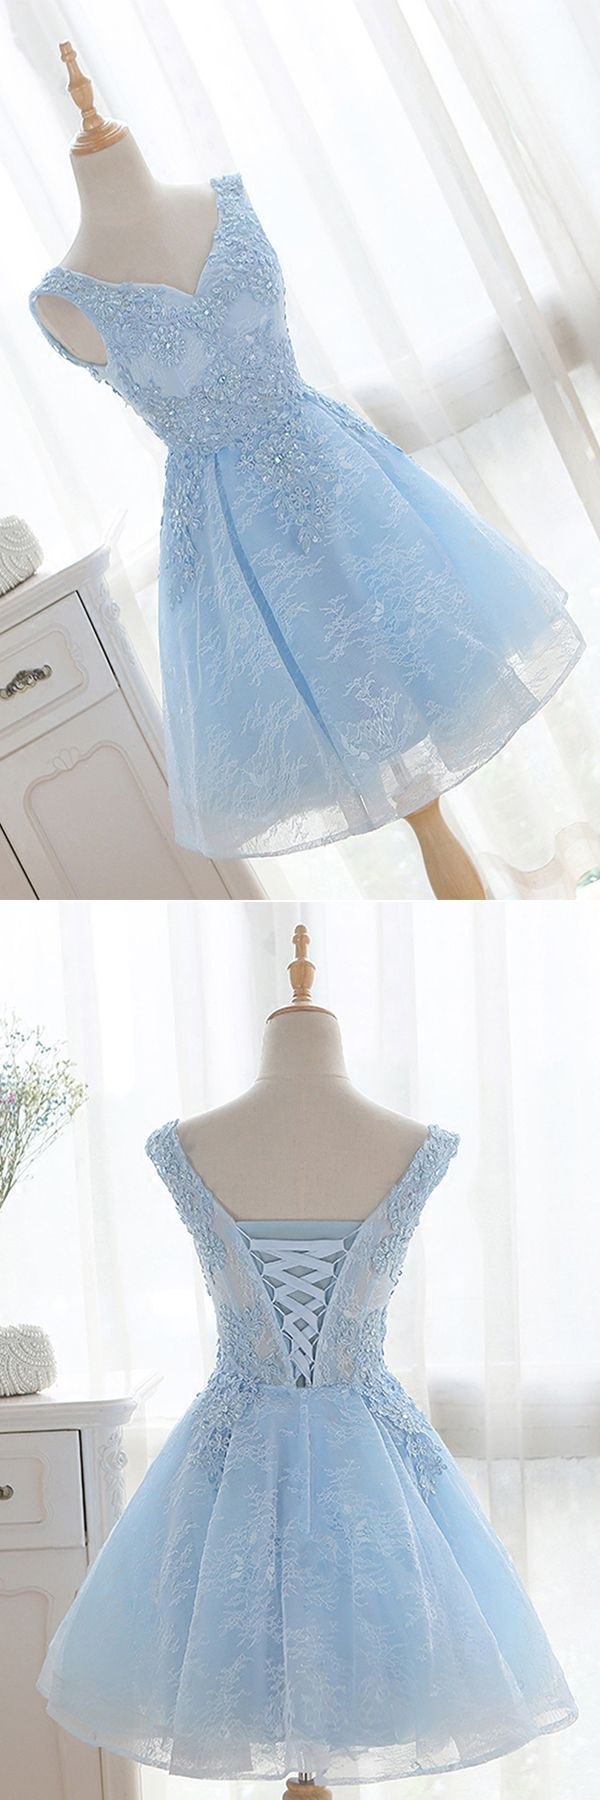 Vneck sky blue lace homecoming dressesed in best